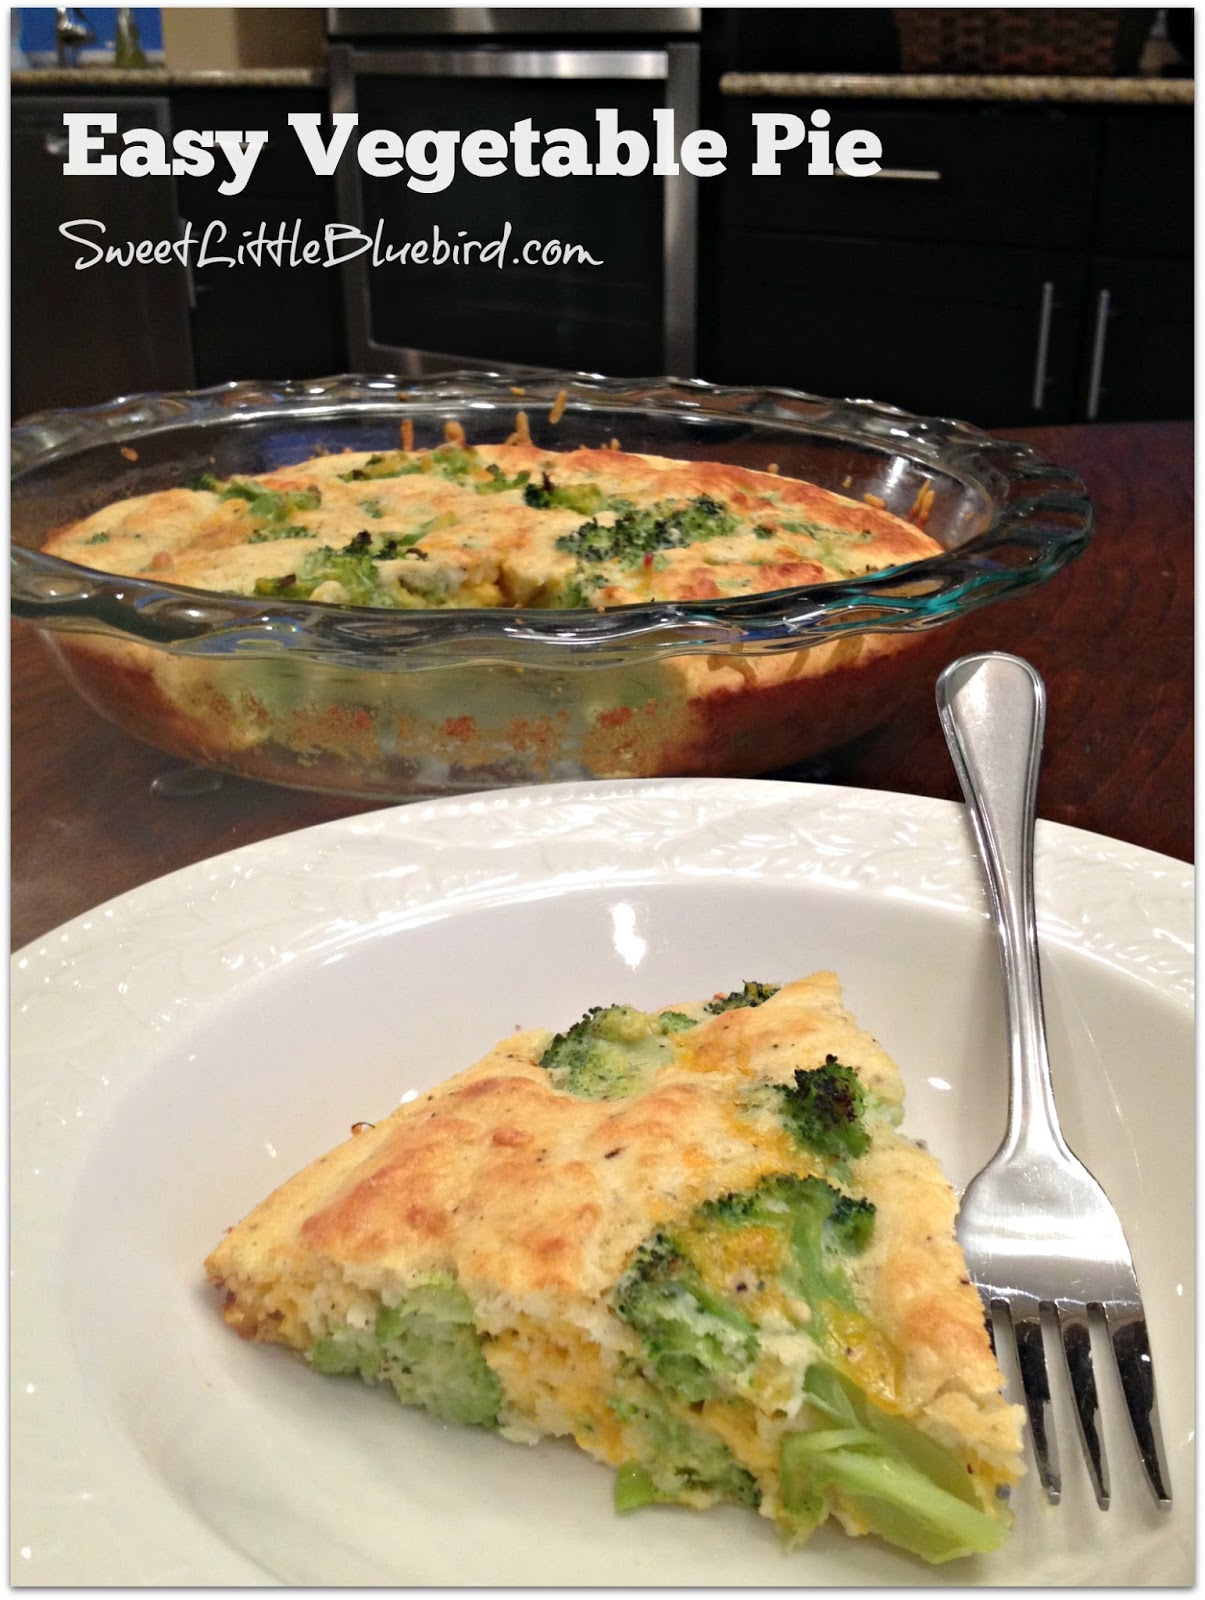 Sweet Little Bluebird: Easy Vegetable Pie